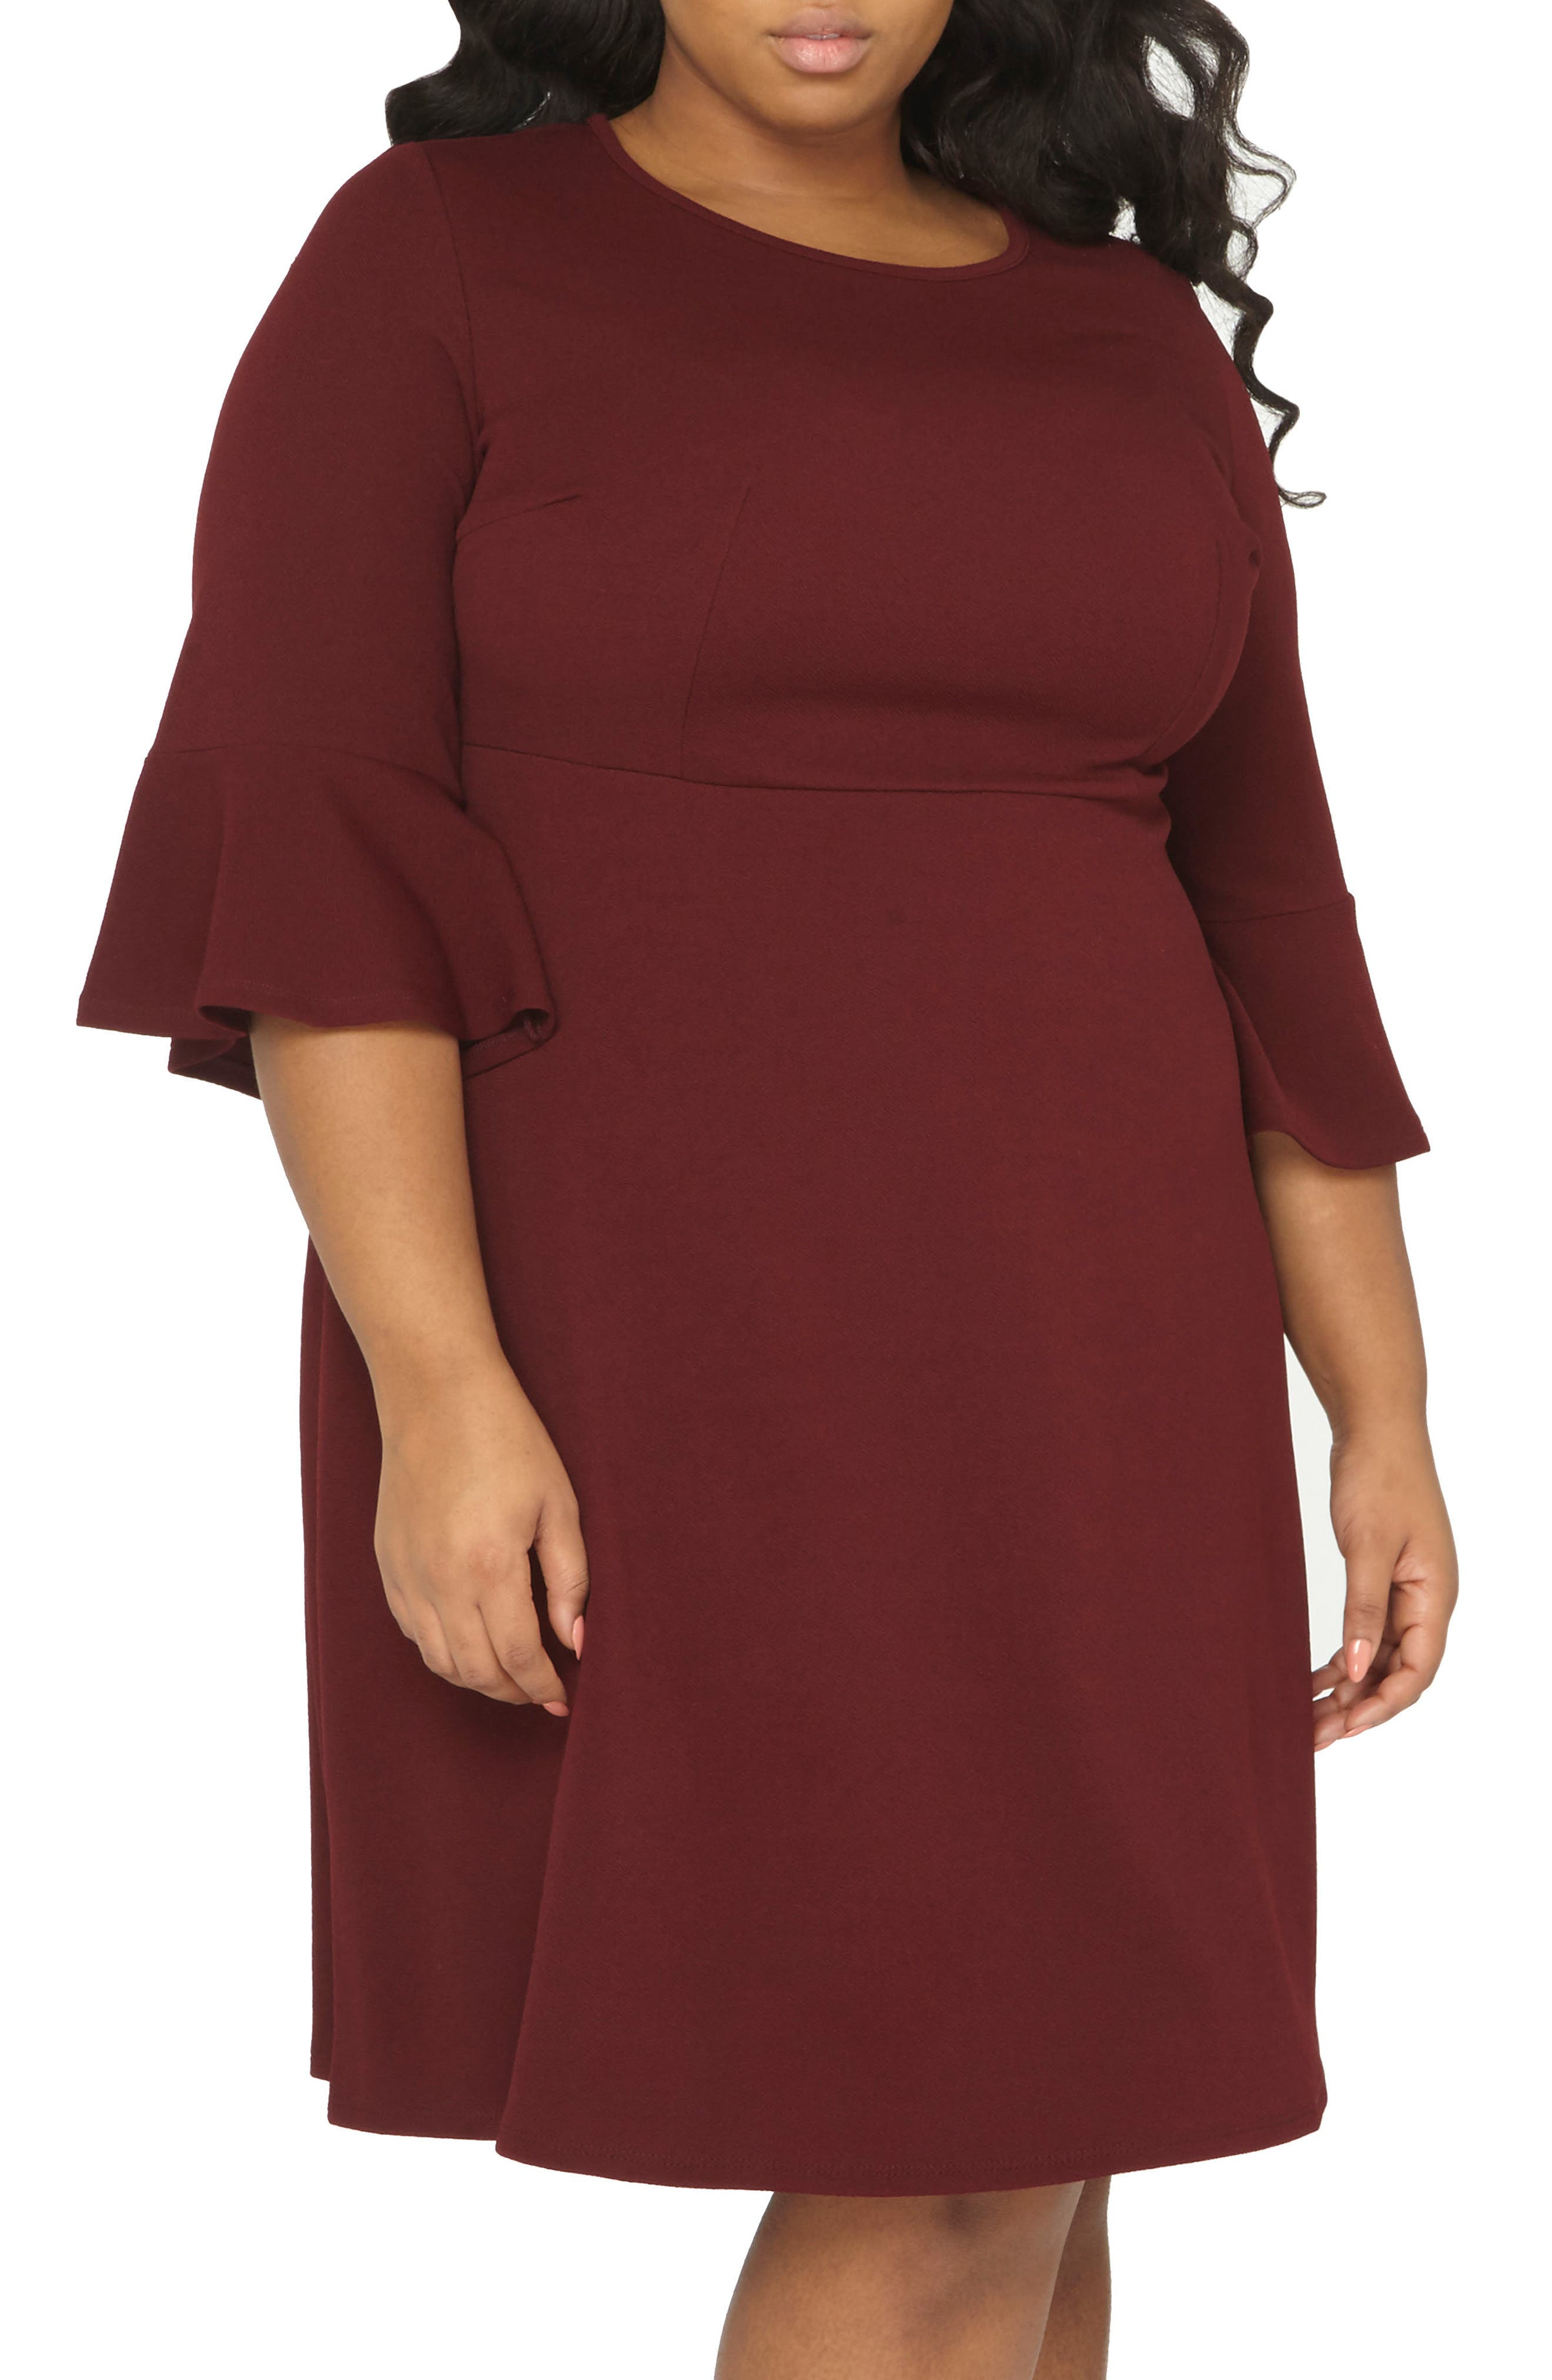 Ruffle Sleeve Fitted Dress,                             Main thumbnail 1, color,                             Wine